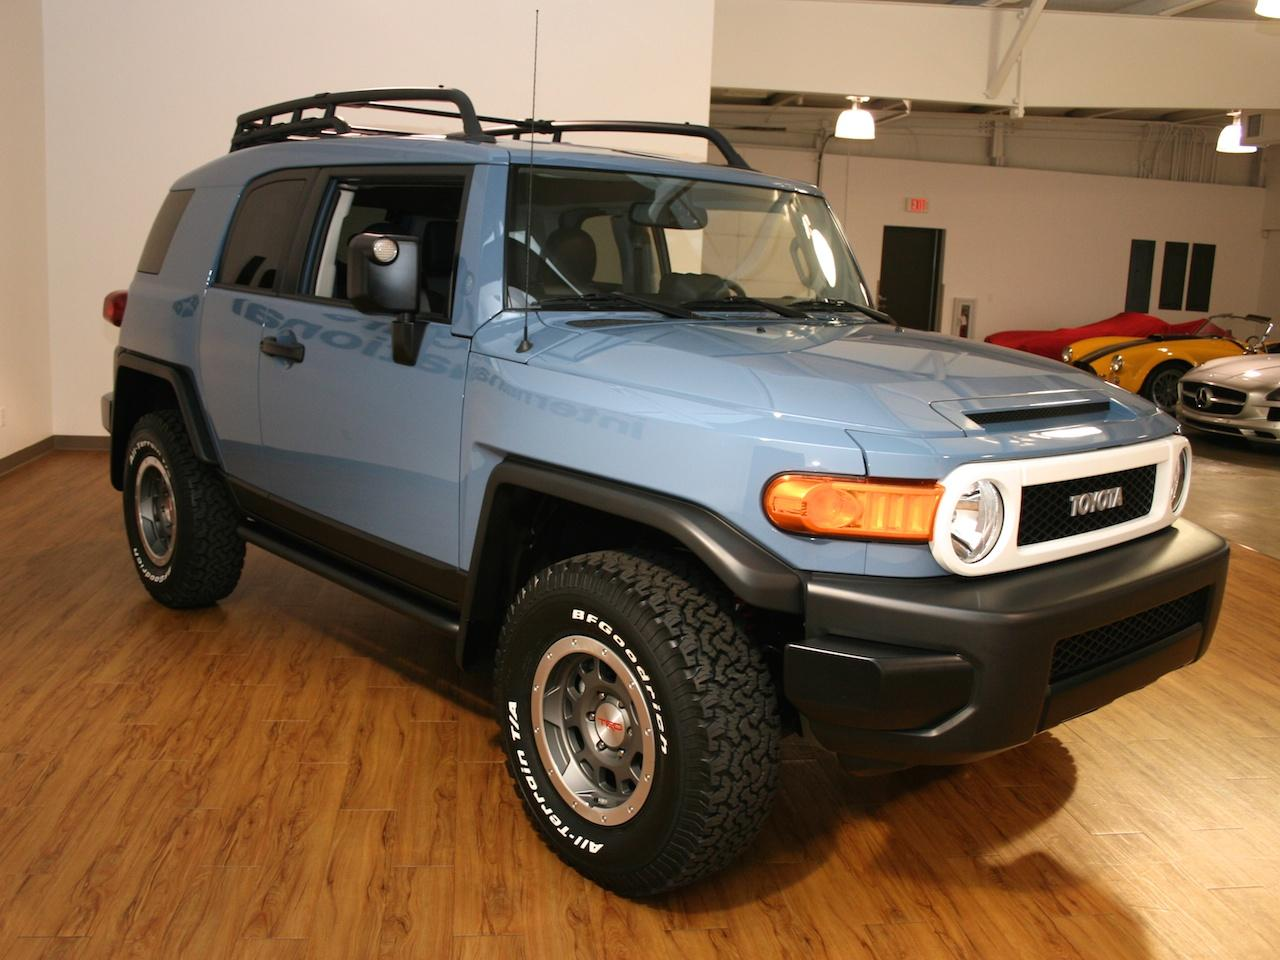 2014 fj cruiser trail team edition for sale autos post. Black Bedroom Furniture Sets. Home Design Ideas